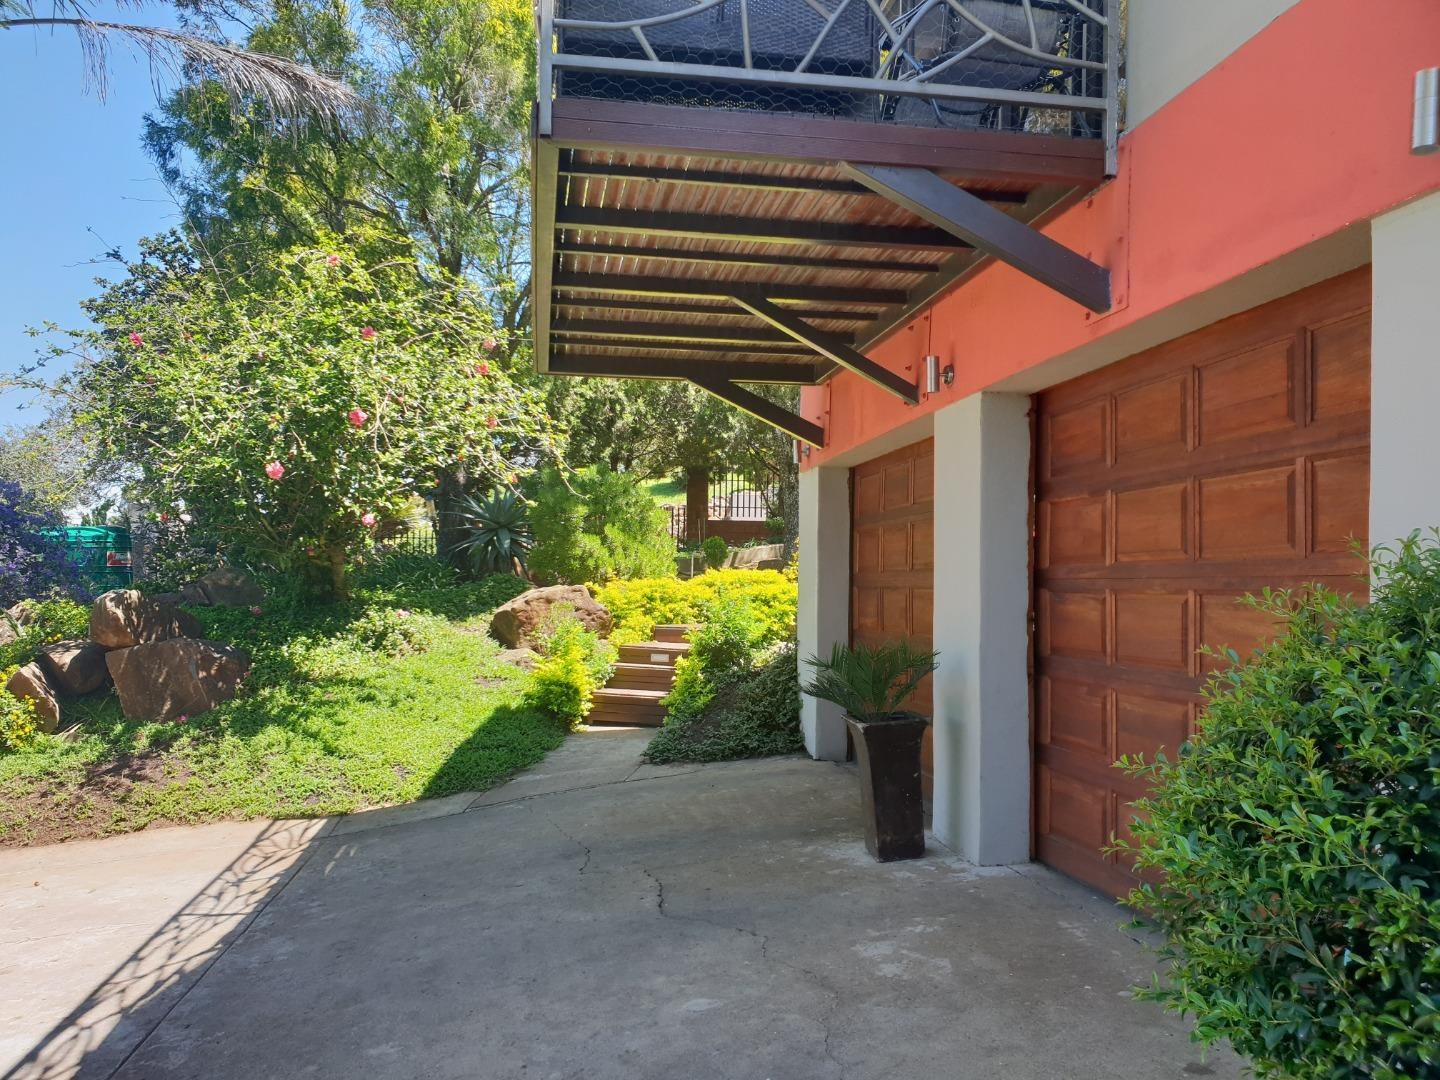 4 Bedroom House for Sale in Observation Hill